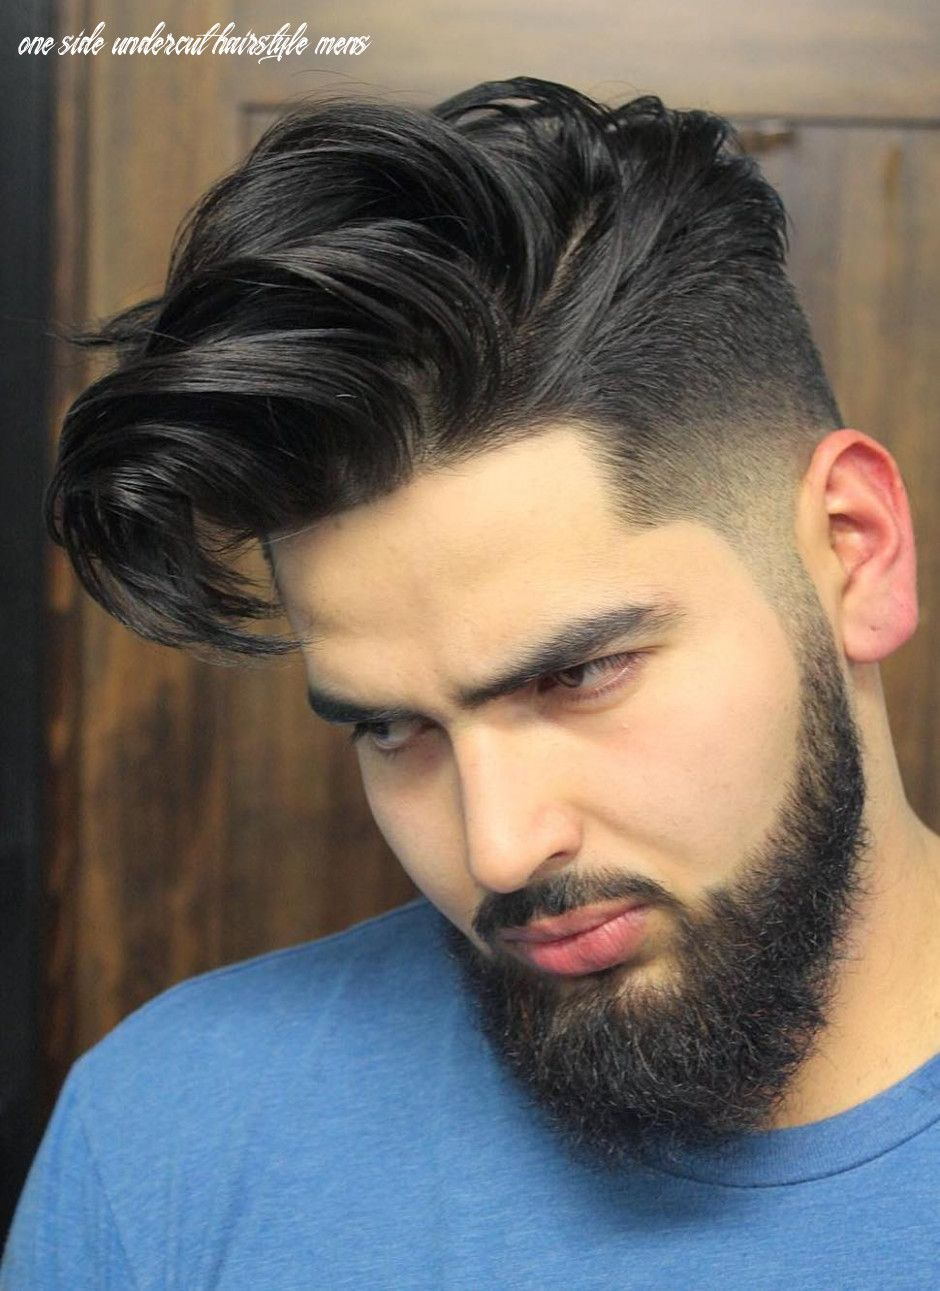 4 One Side Undercut Hairstyle Mens  Undercut fade hairstyle, Mens